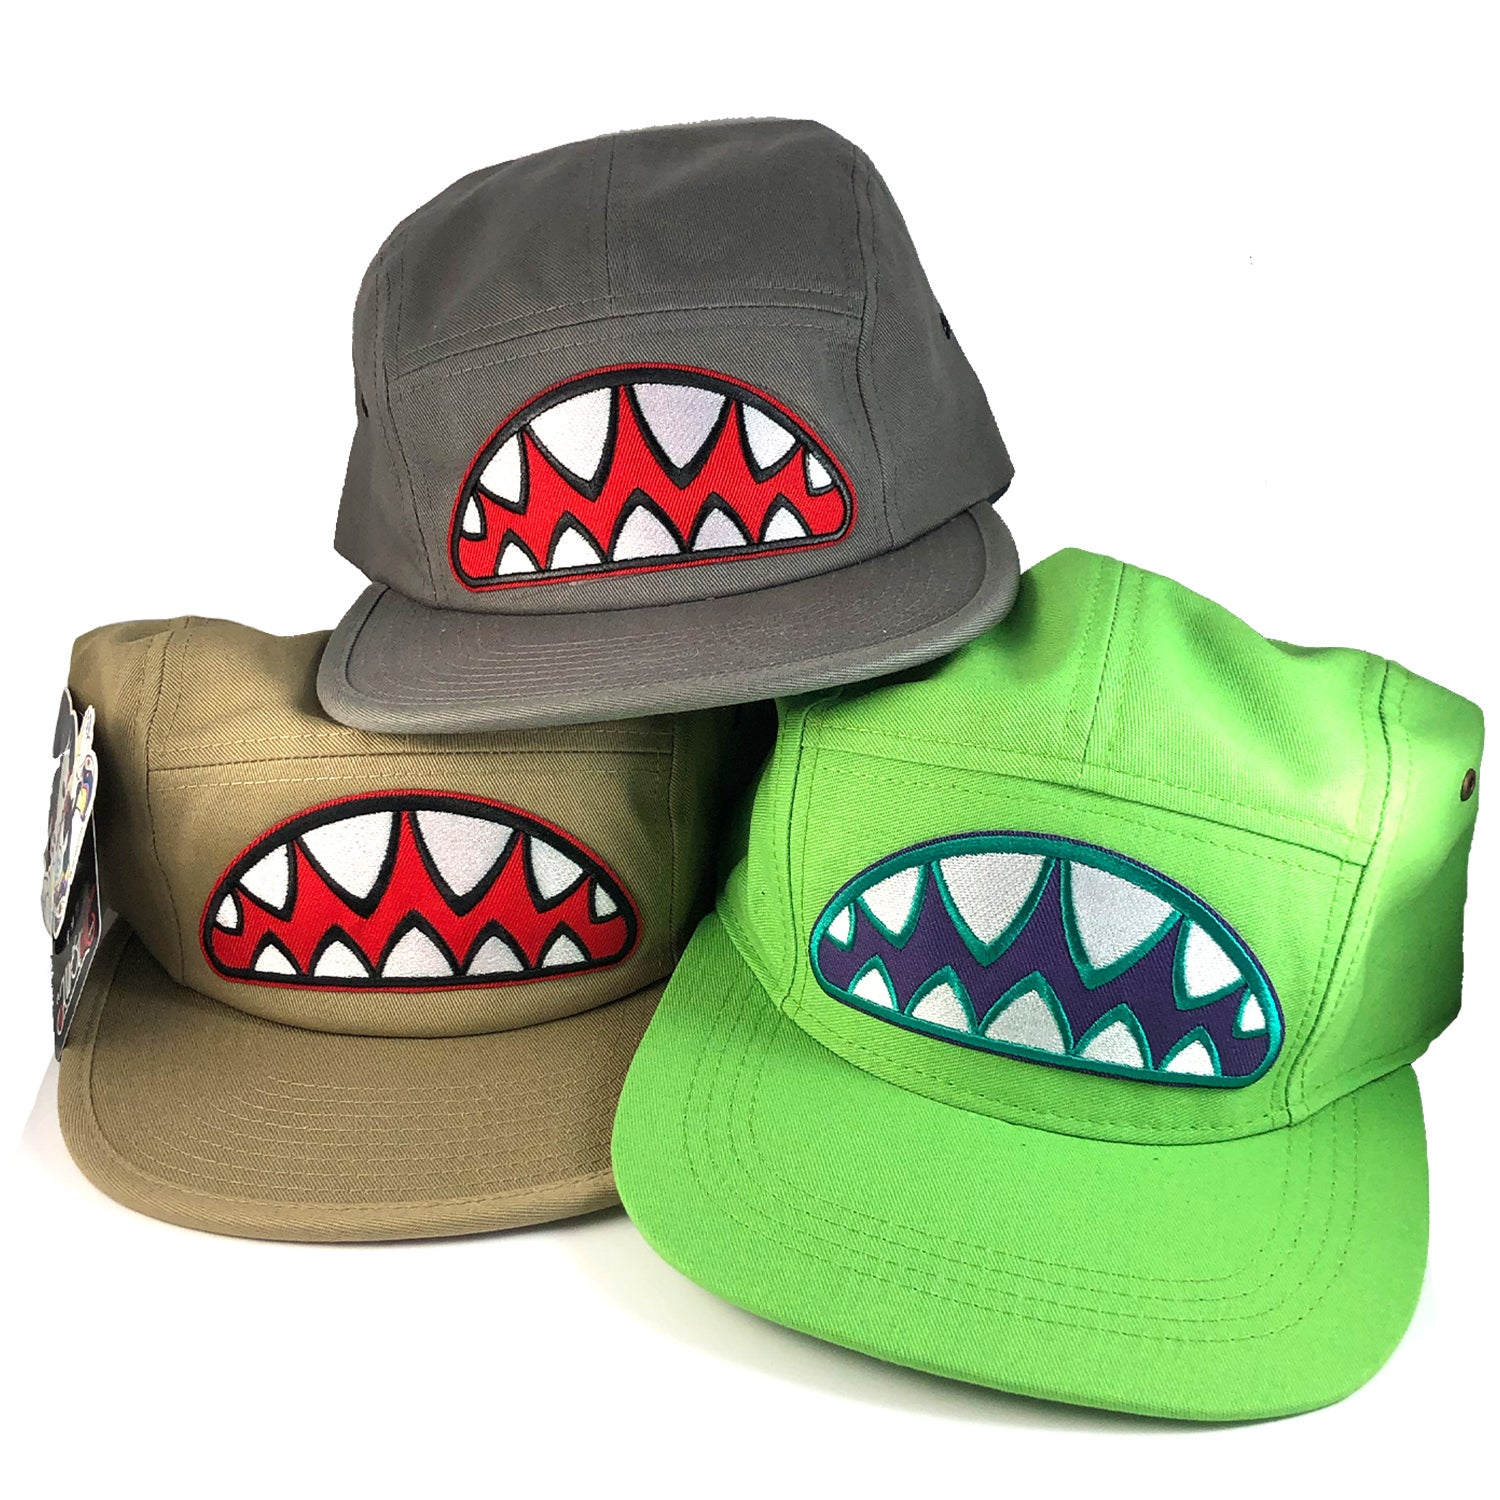 Image of BUNNY SHARK TEETH 5 PANEL HATS